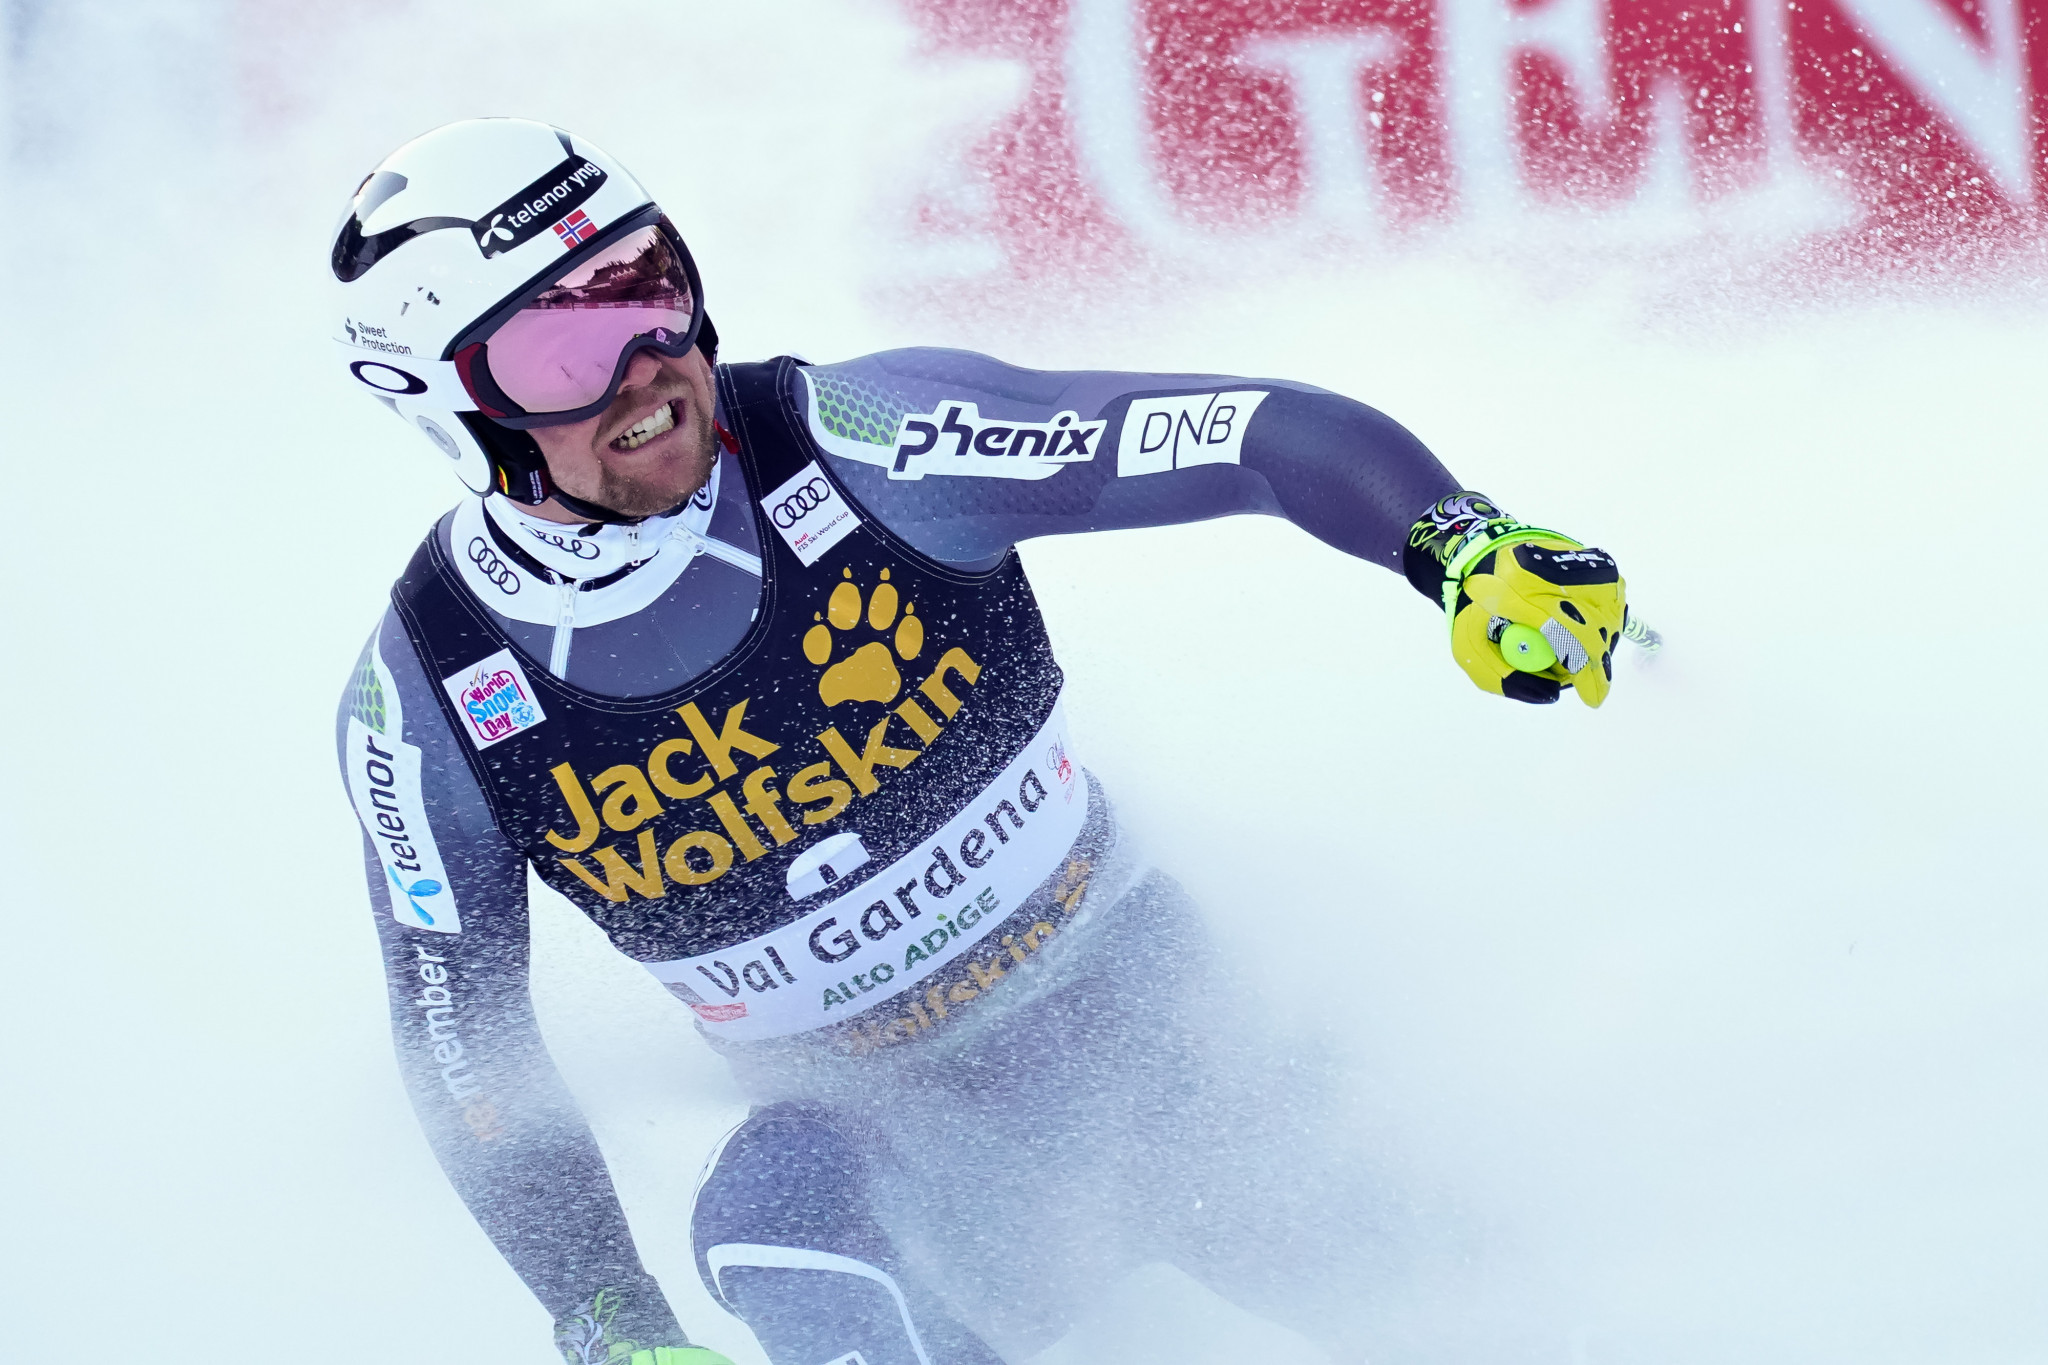 Norway's Aleksander Aamodt Kilde won today's downhill at the FIS Alpine World Cup in Val Gardena ©Getty Images